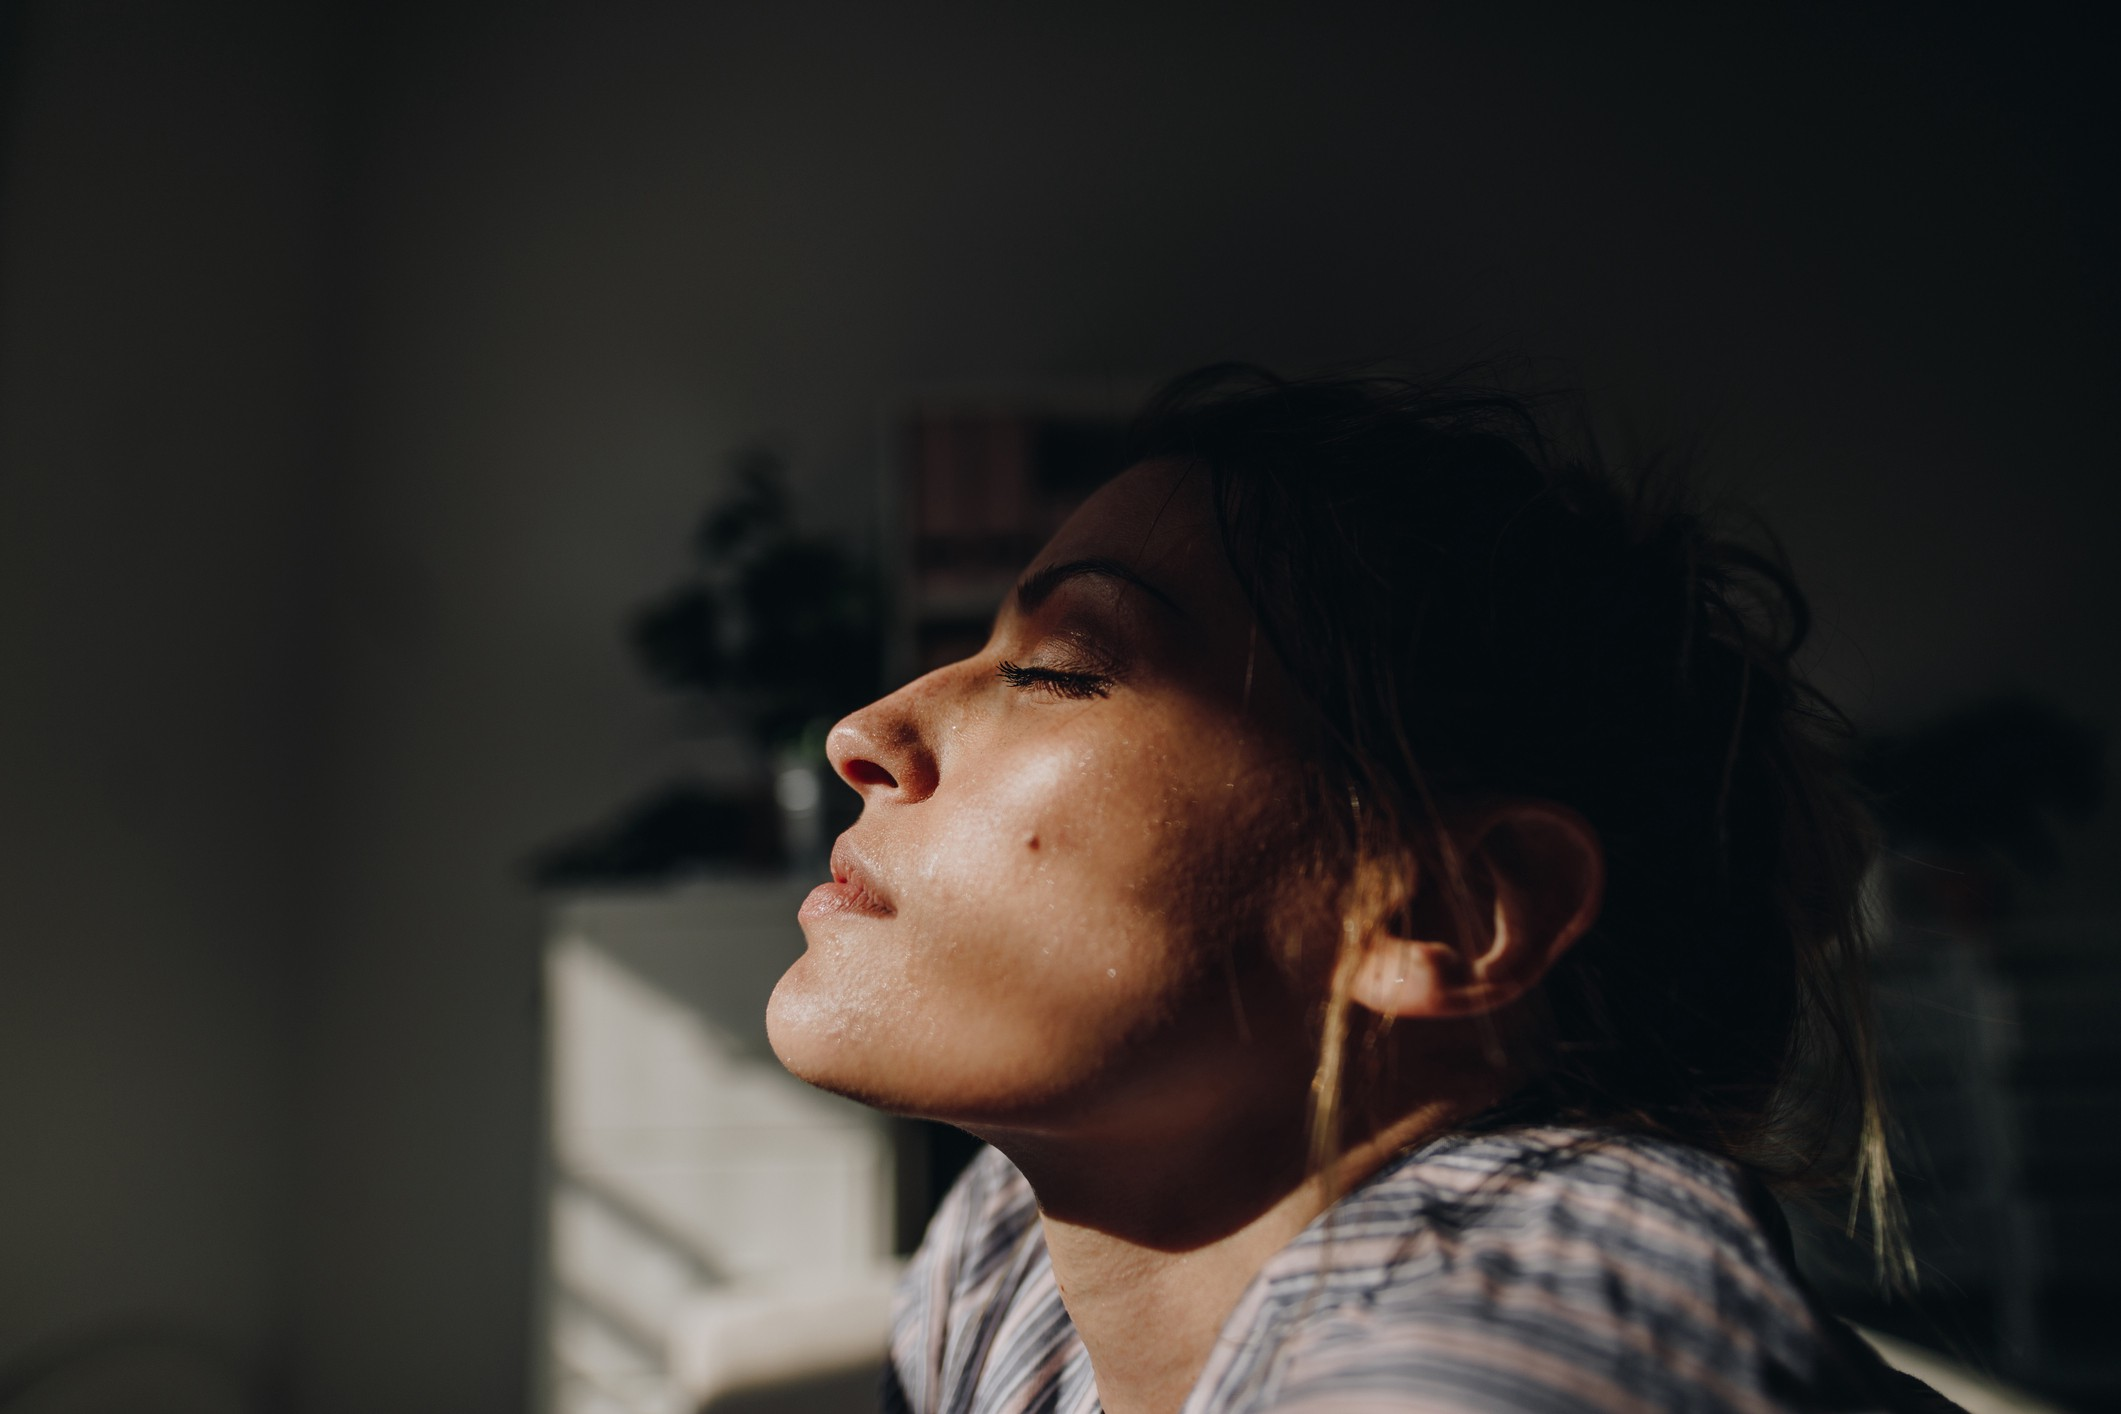 A young woman closes her eyes and breathes in, coping with loneliness and isolation.